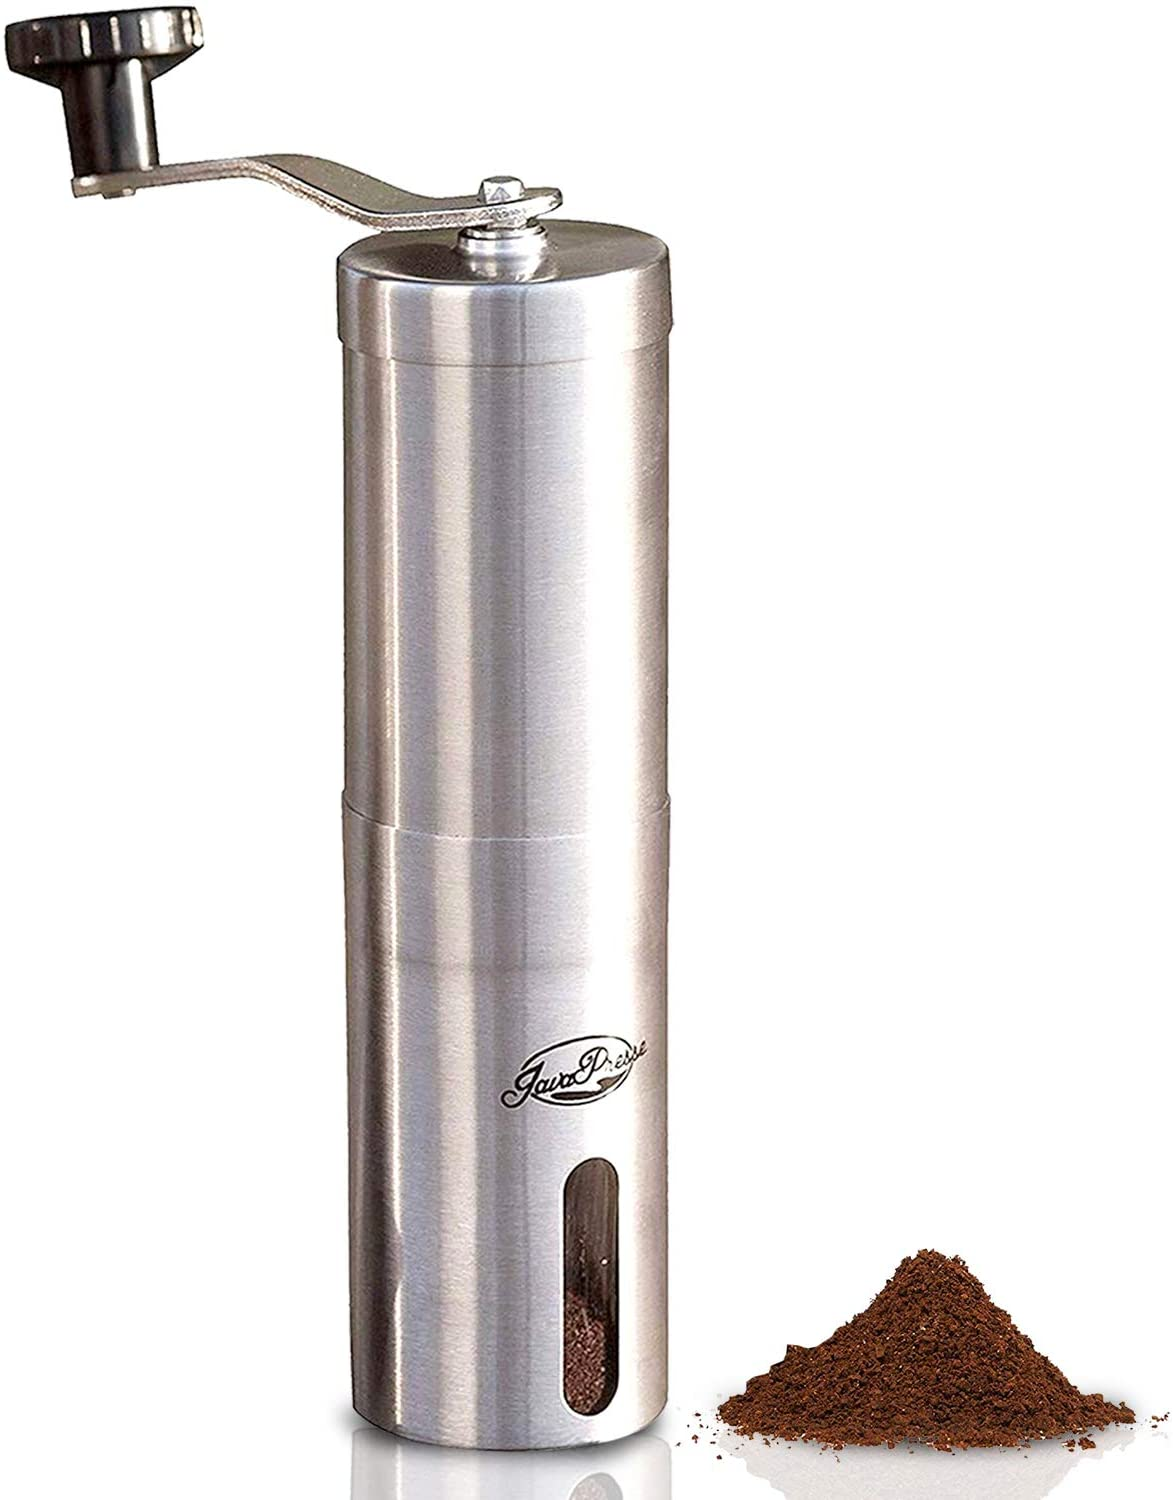 JavaPresse Manual Coffee Grinder with Adjustable Setting -